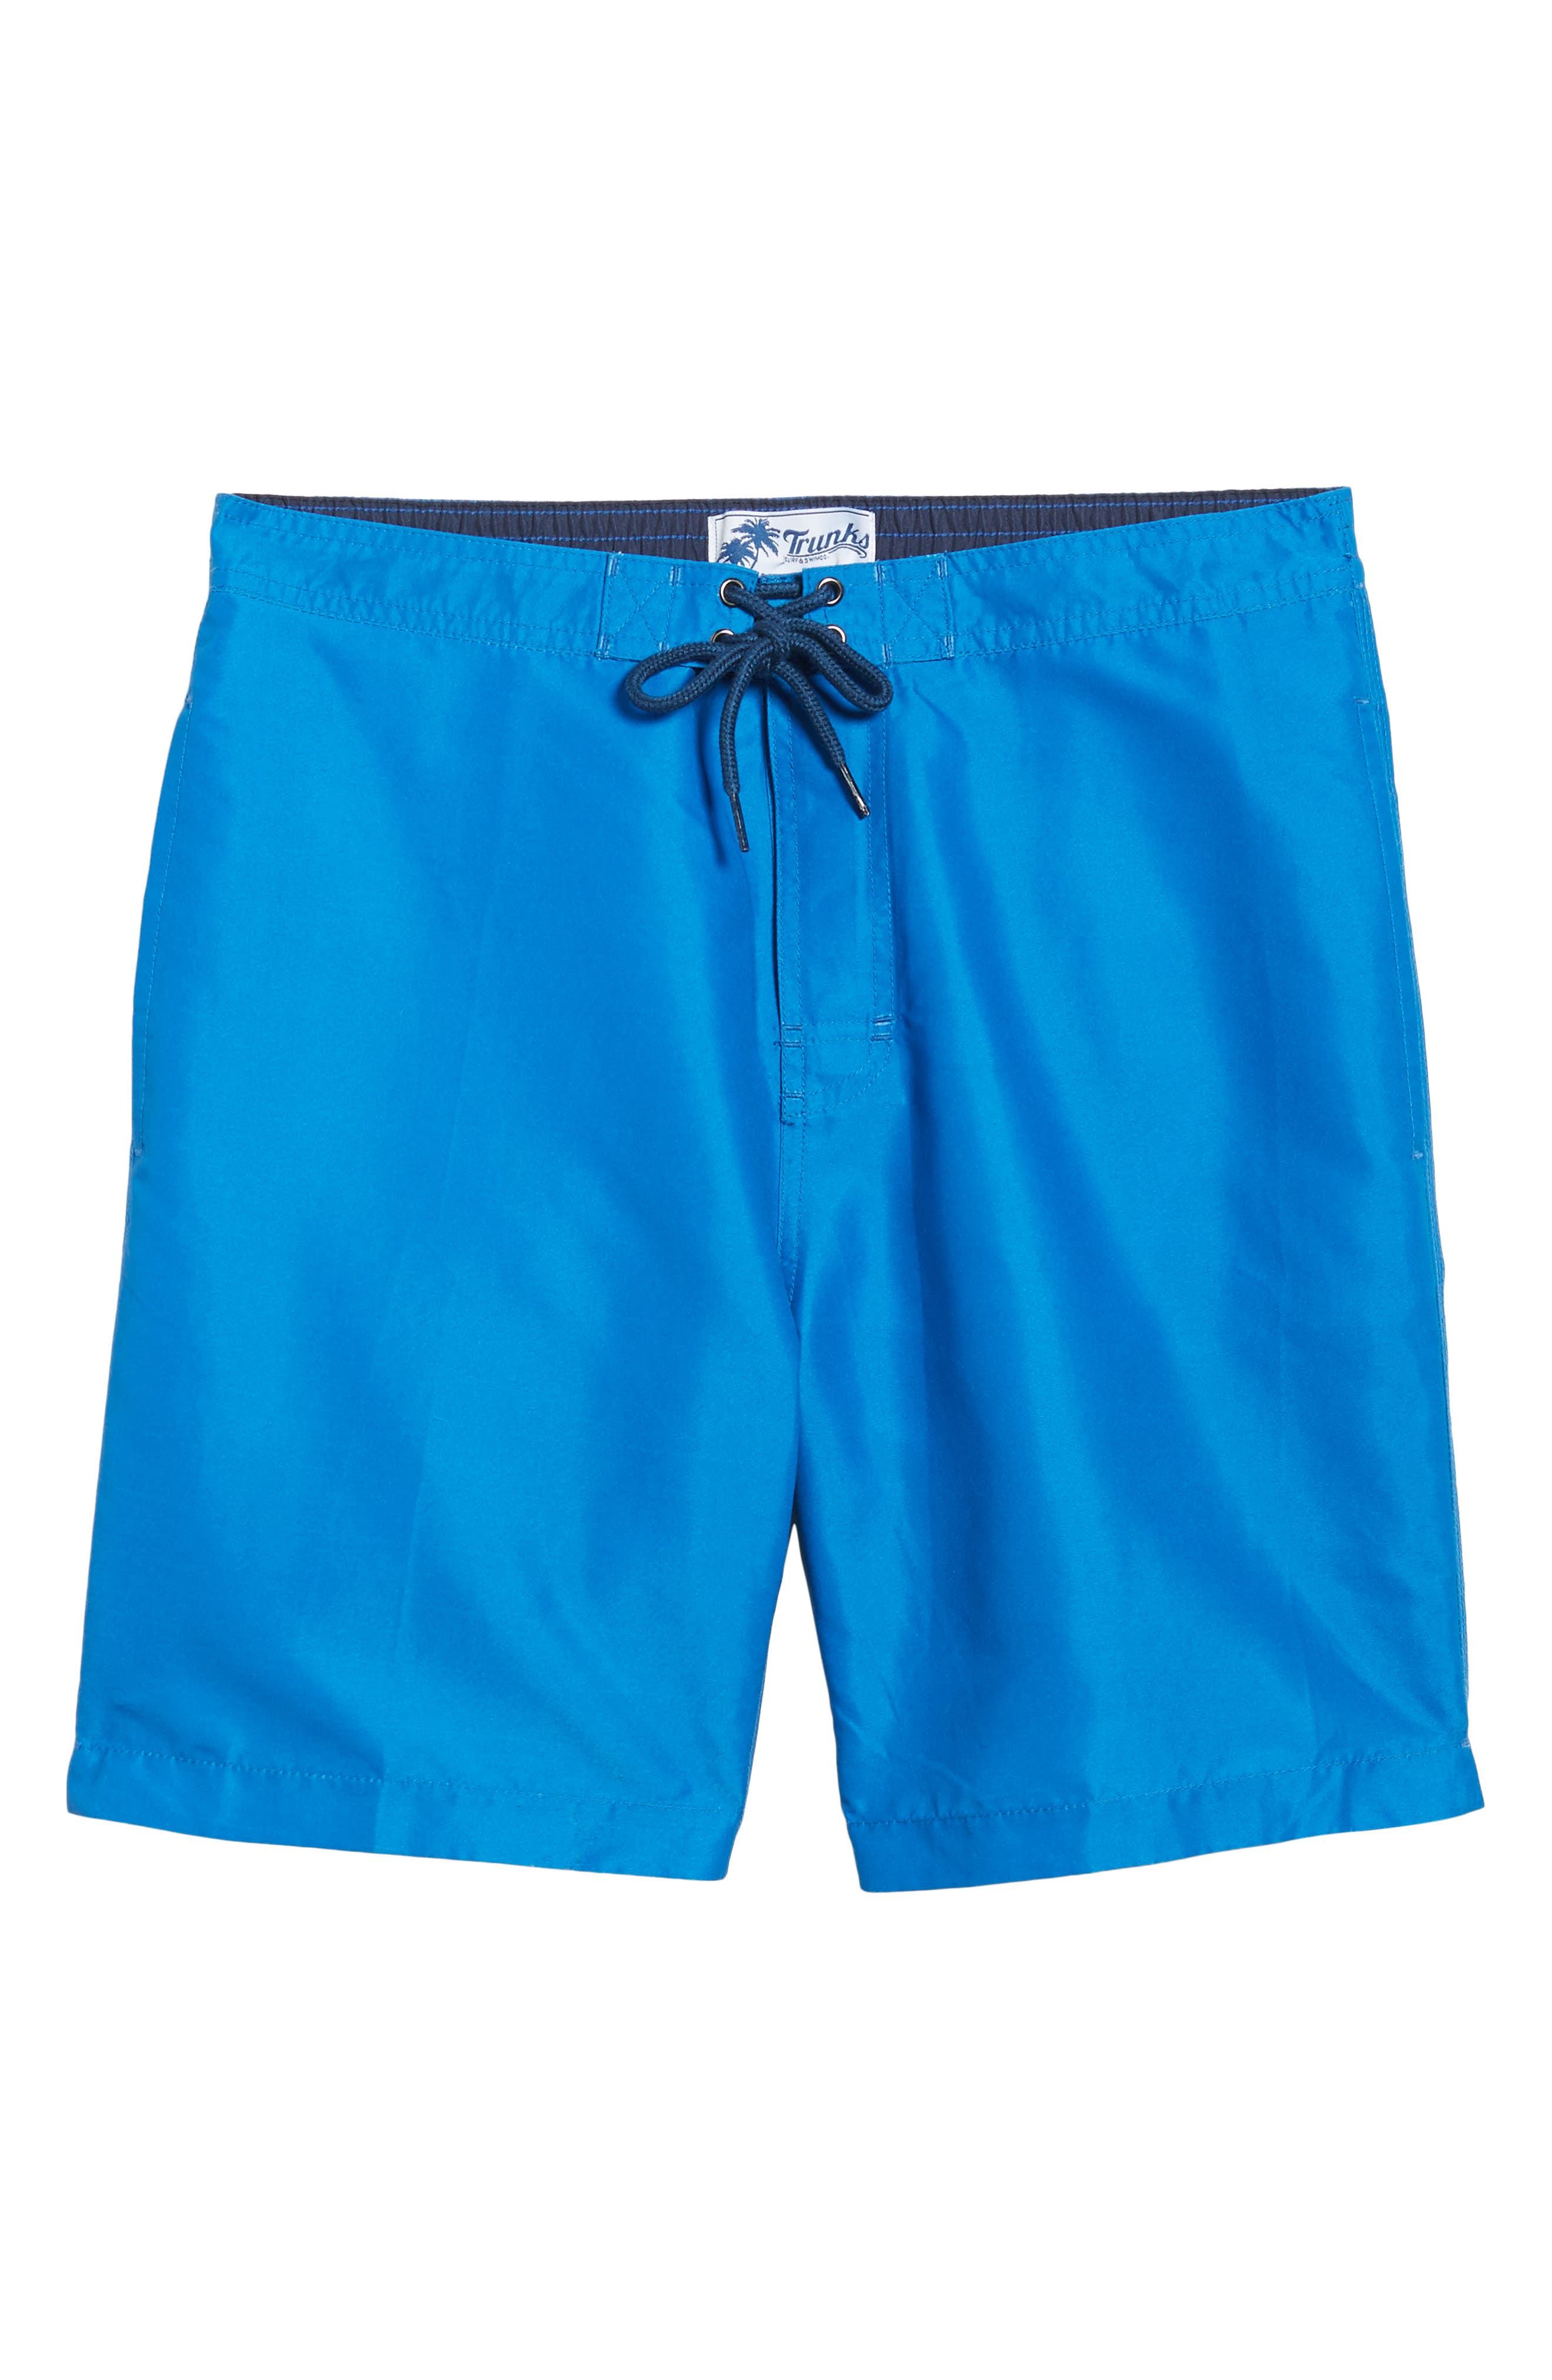 Swami Solid Board Shorts,                             Alternate thumbnail 6, color,                             416